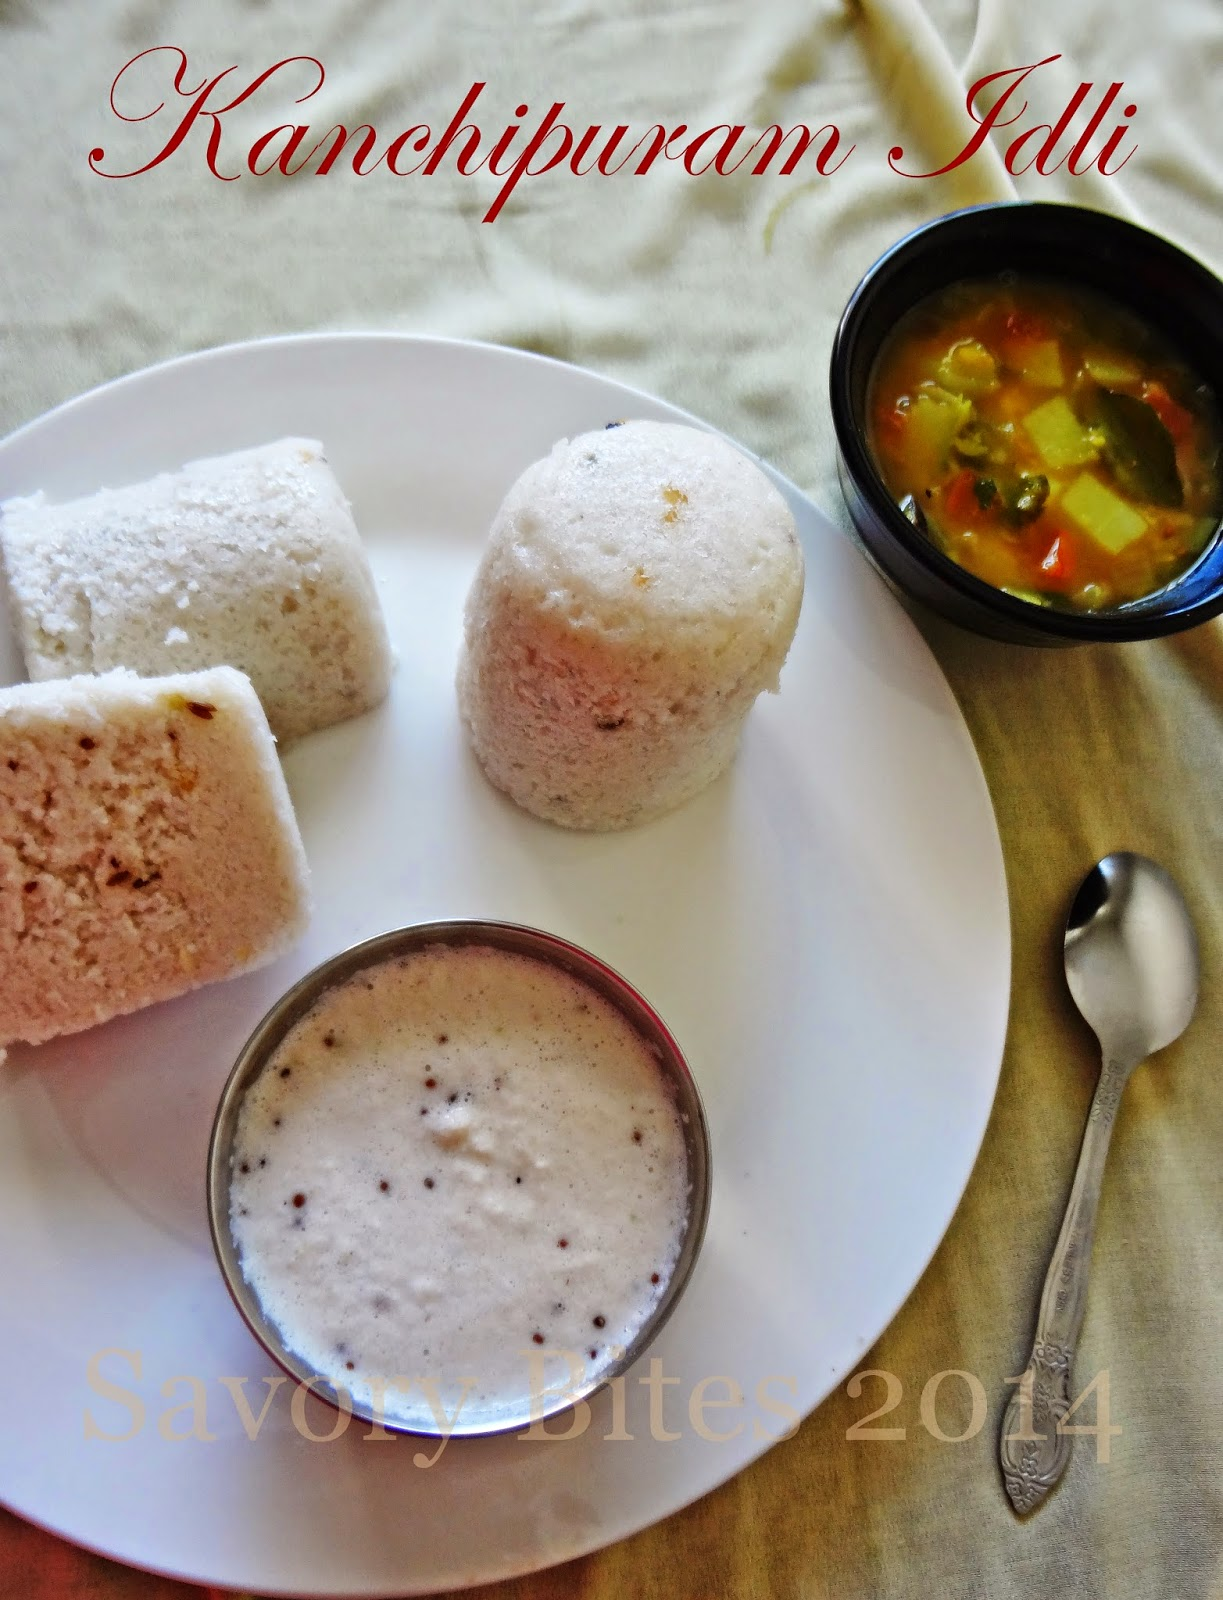 Kanchipuram Idli South Indian Breakfast Chutney Sambhar